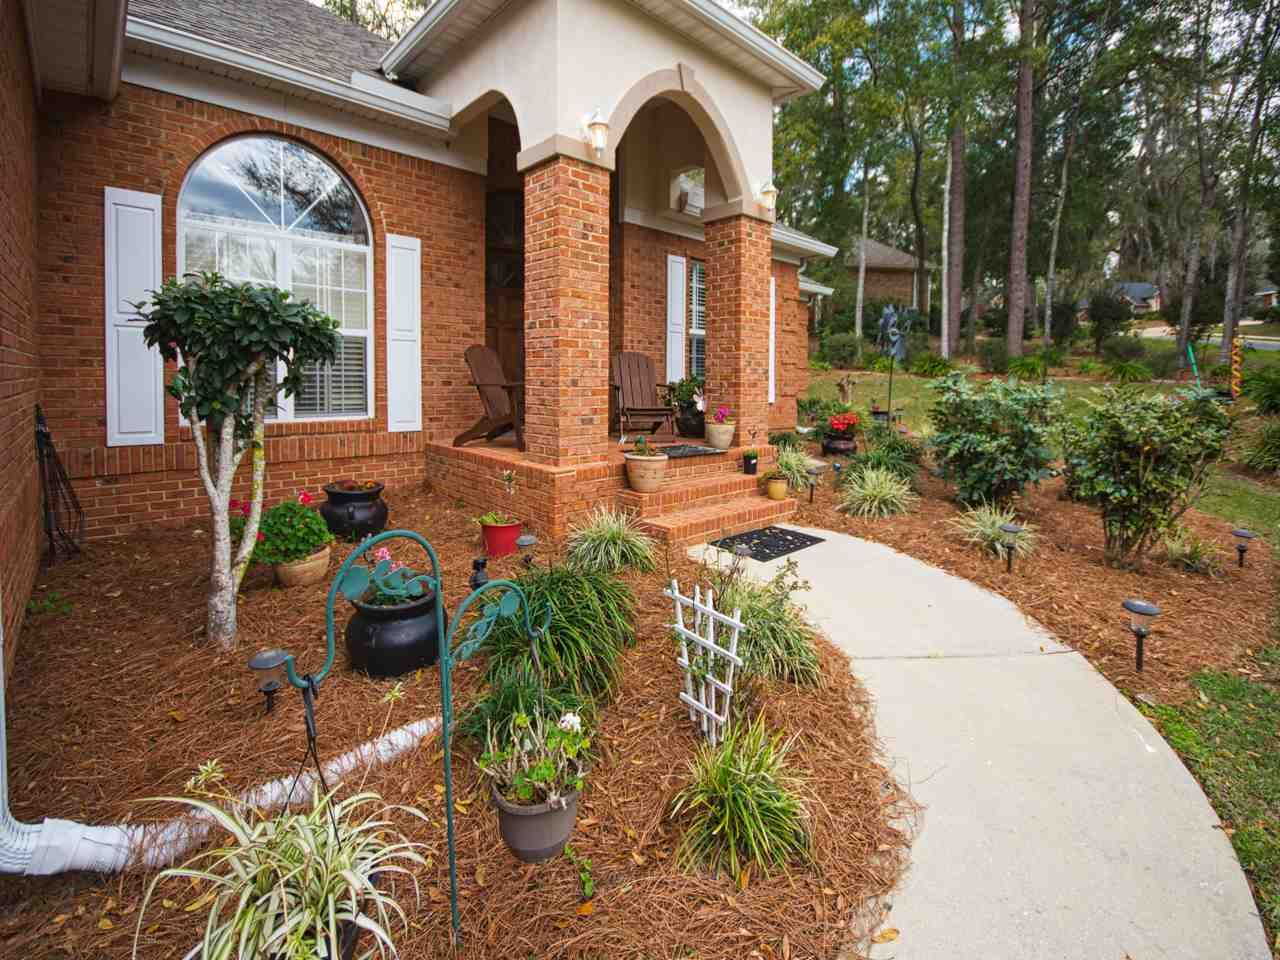 Photo of 3460 Hyde Park Way, TALLAHASSEE, FL 32309 (MLS # 316257)